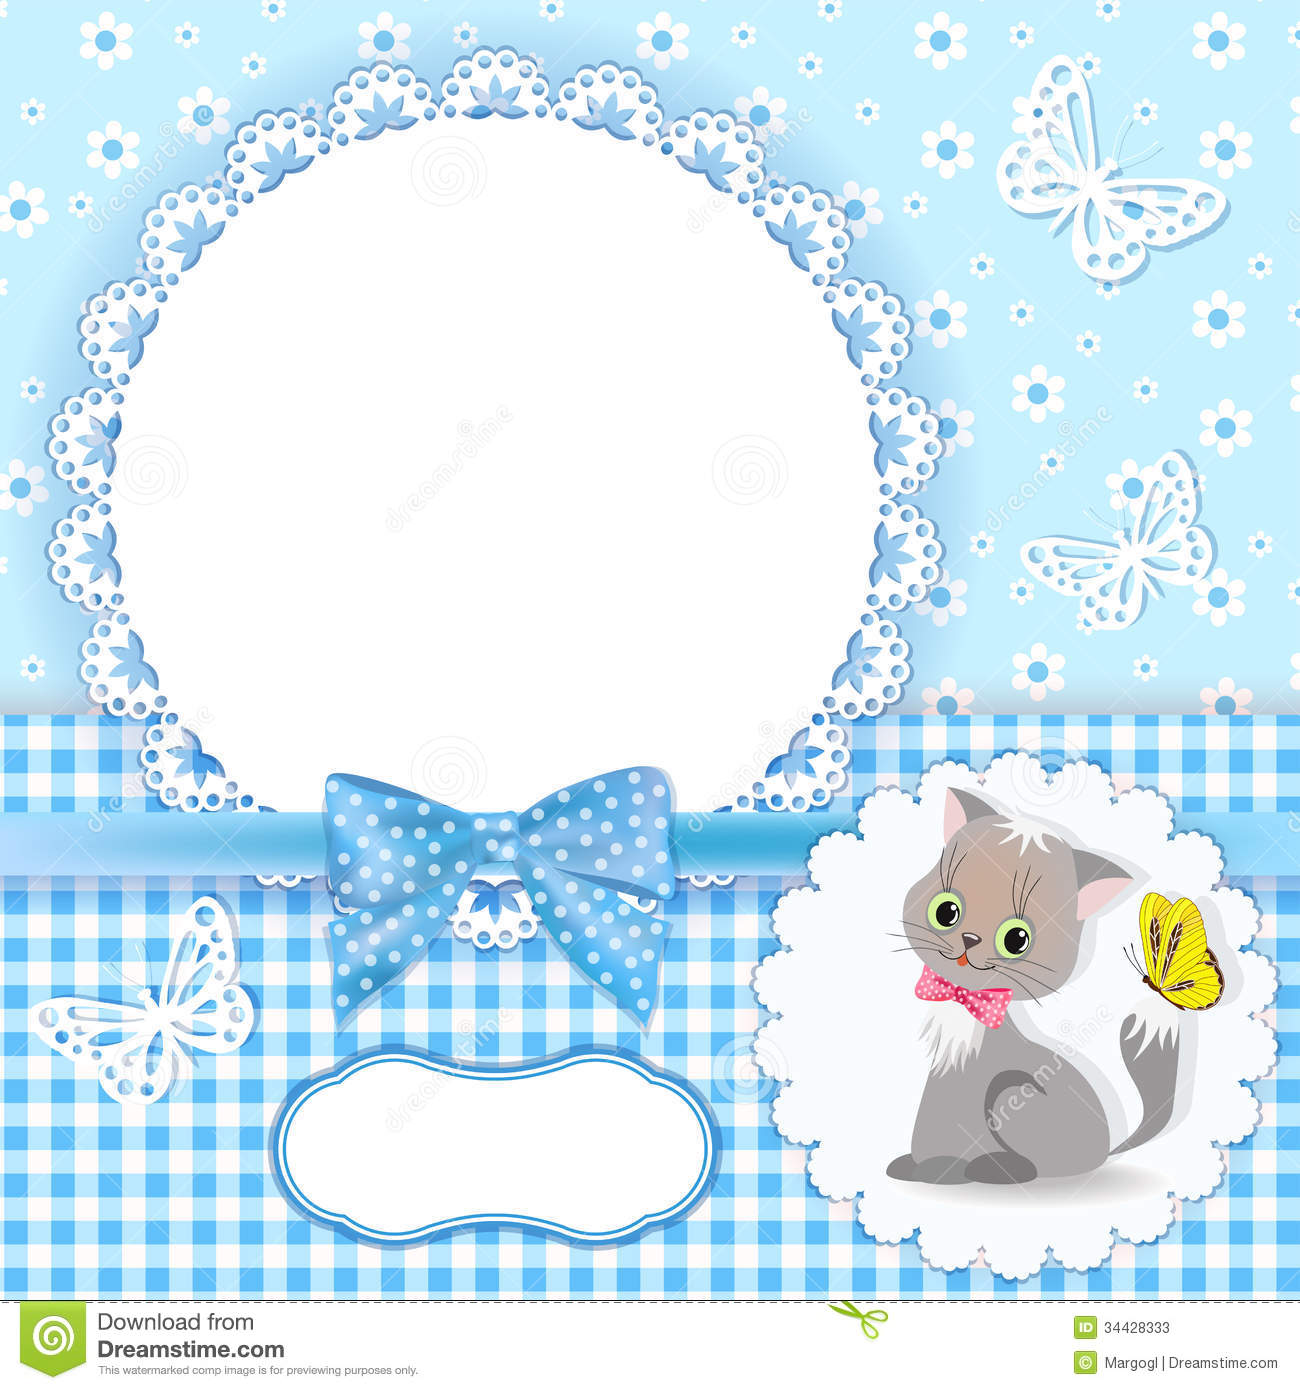 Baby Background With Frame Stock Photos  Image 34428333